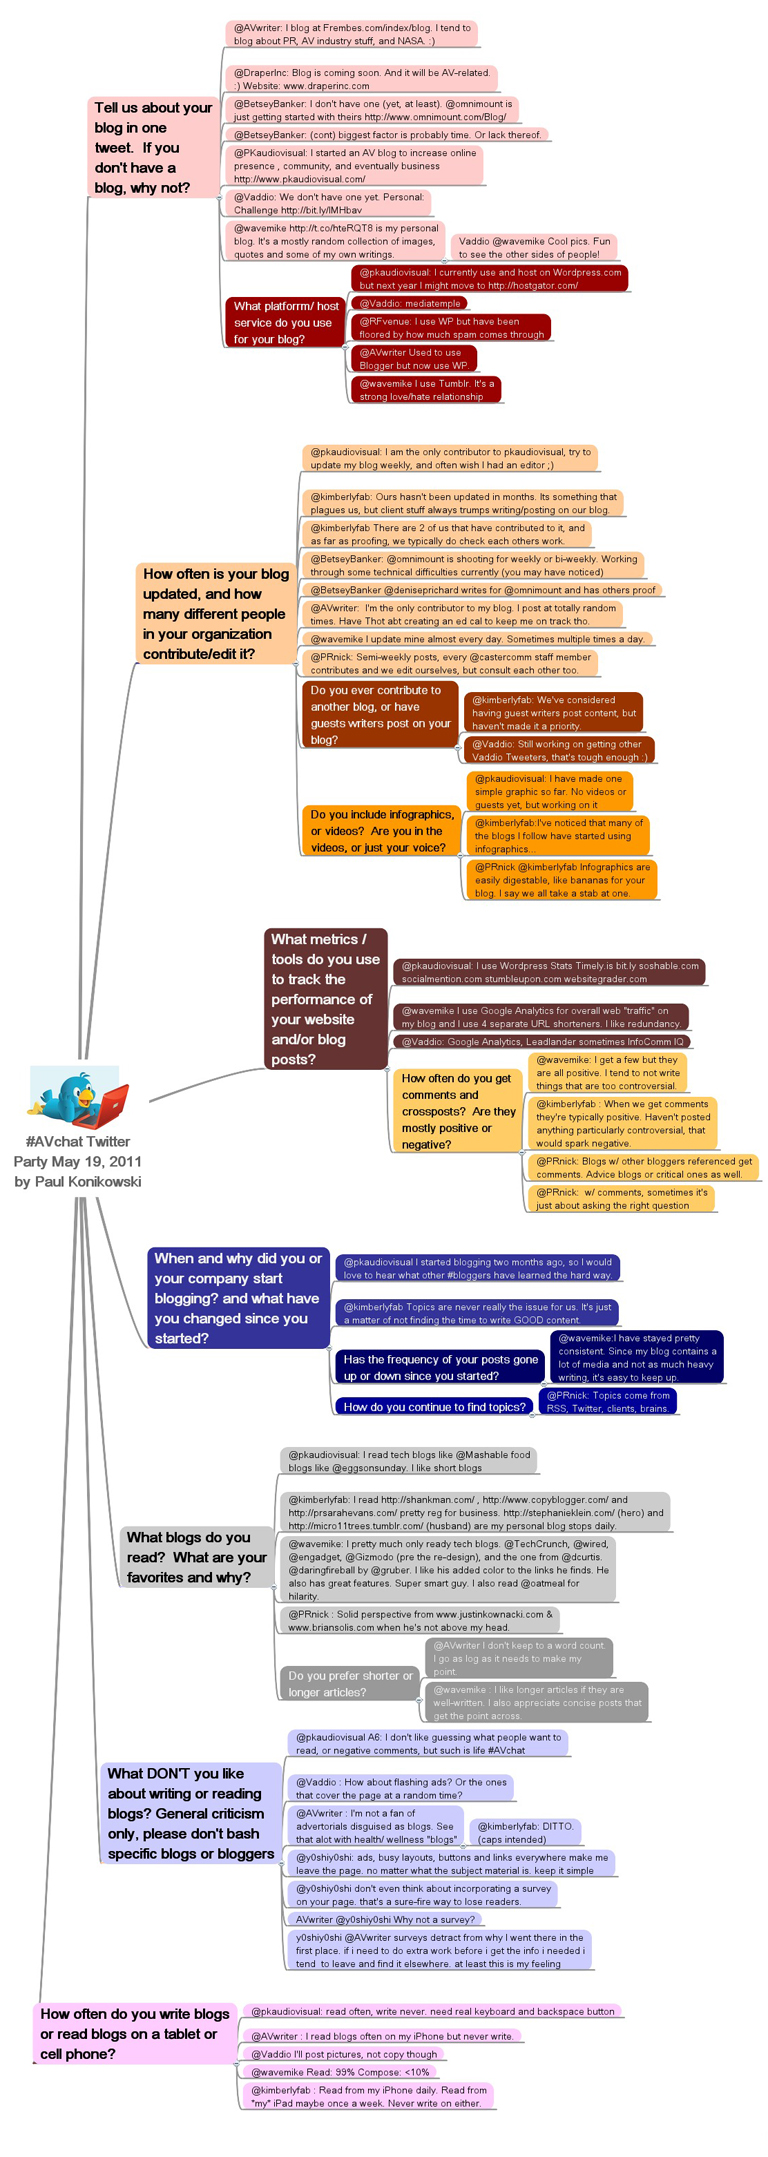 Mindmeister Mind Map of #AVchat Twitter Party about Blogging